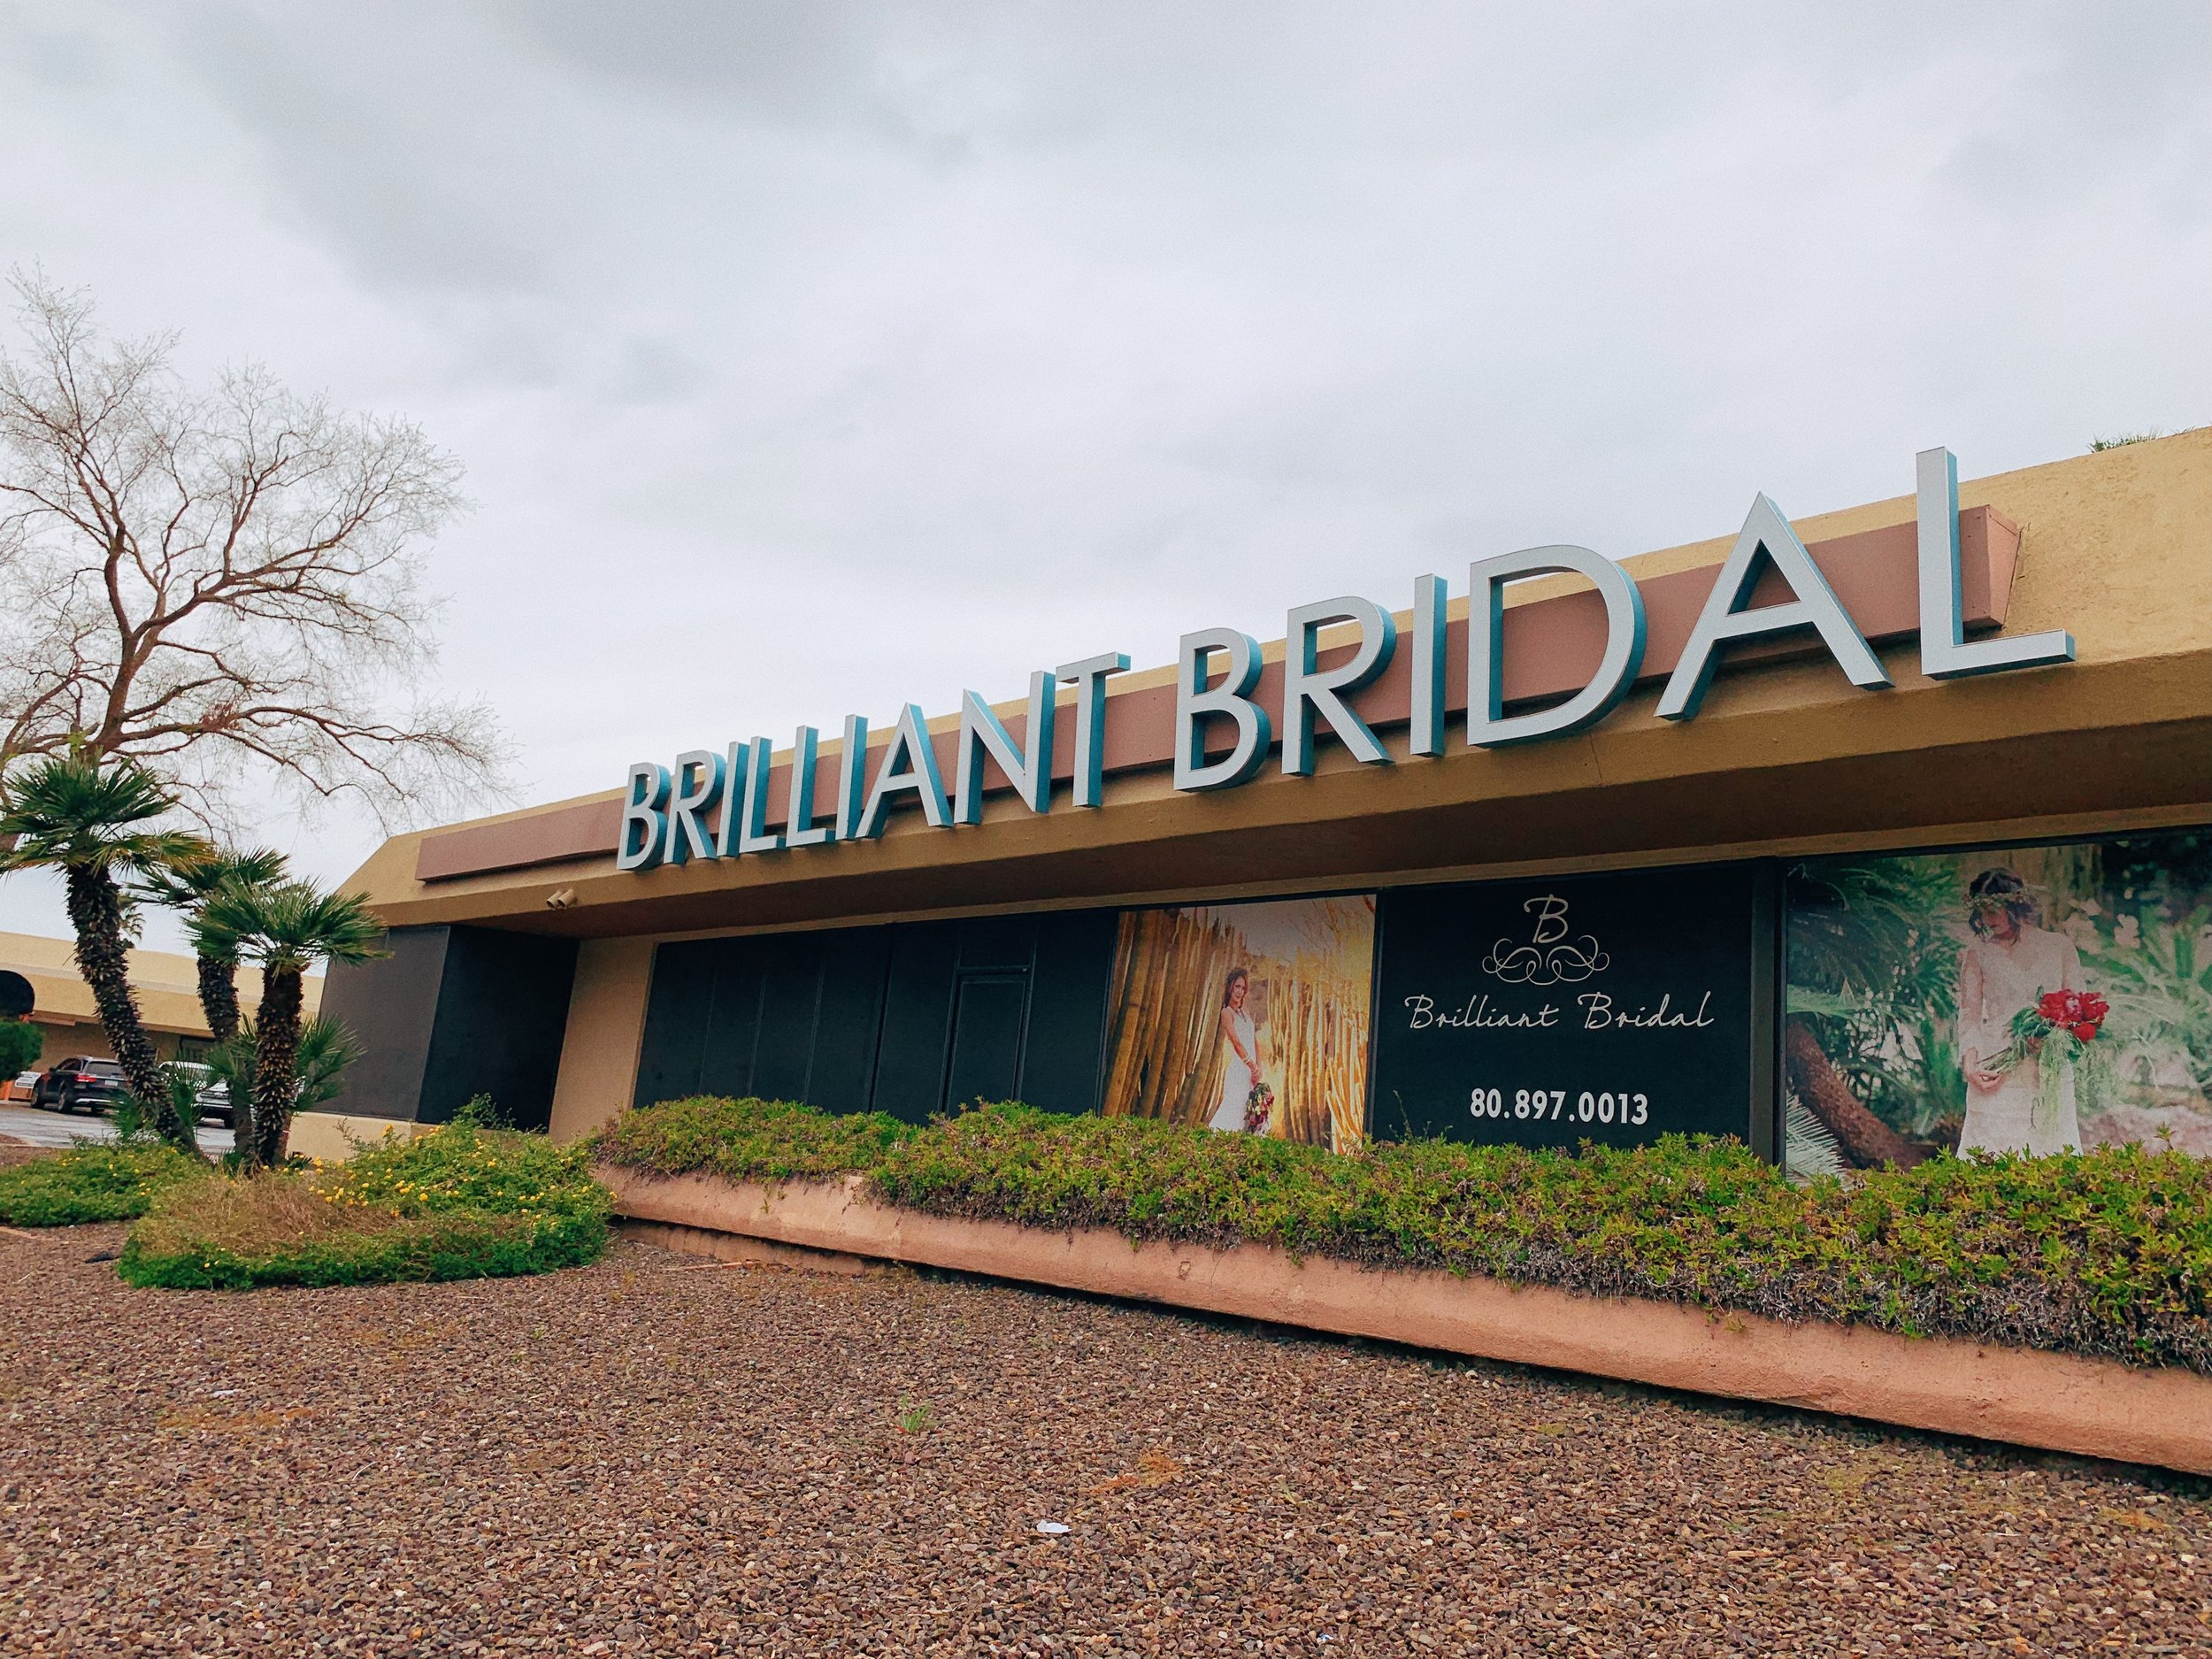 Mesa Bridal Shop — Brilliant Bridal